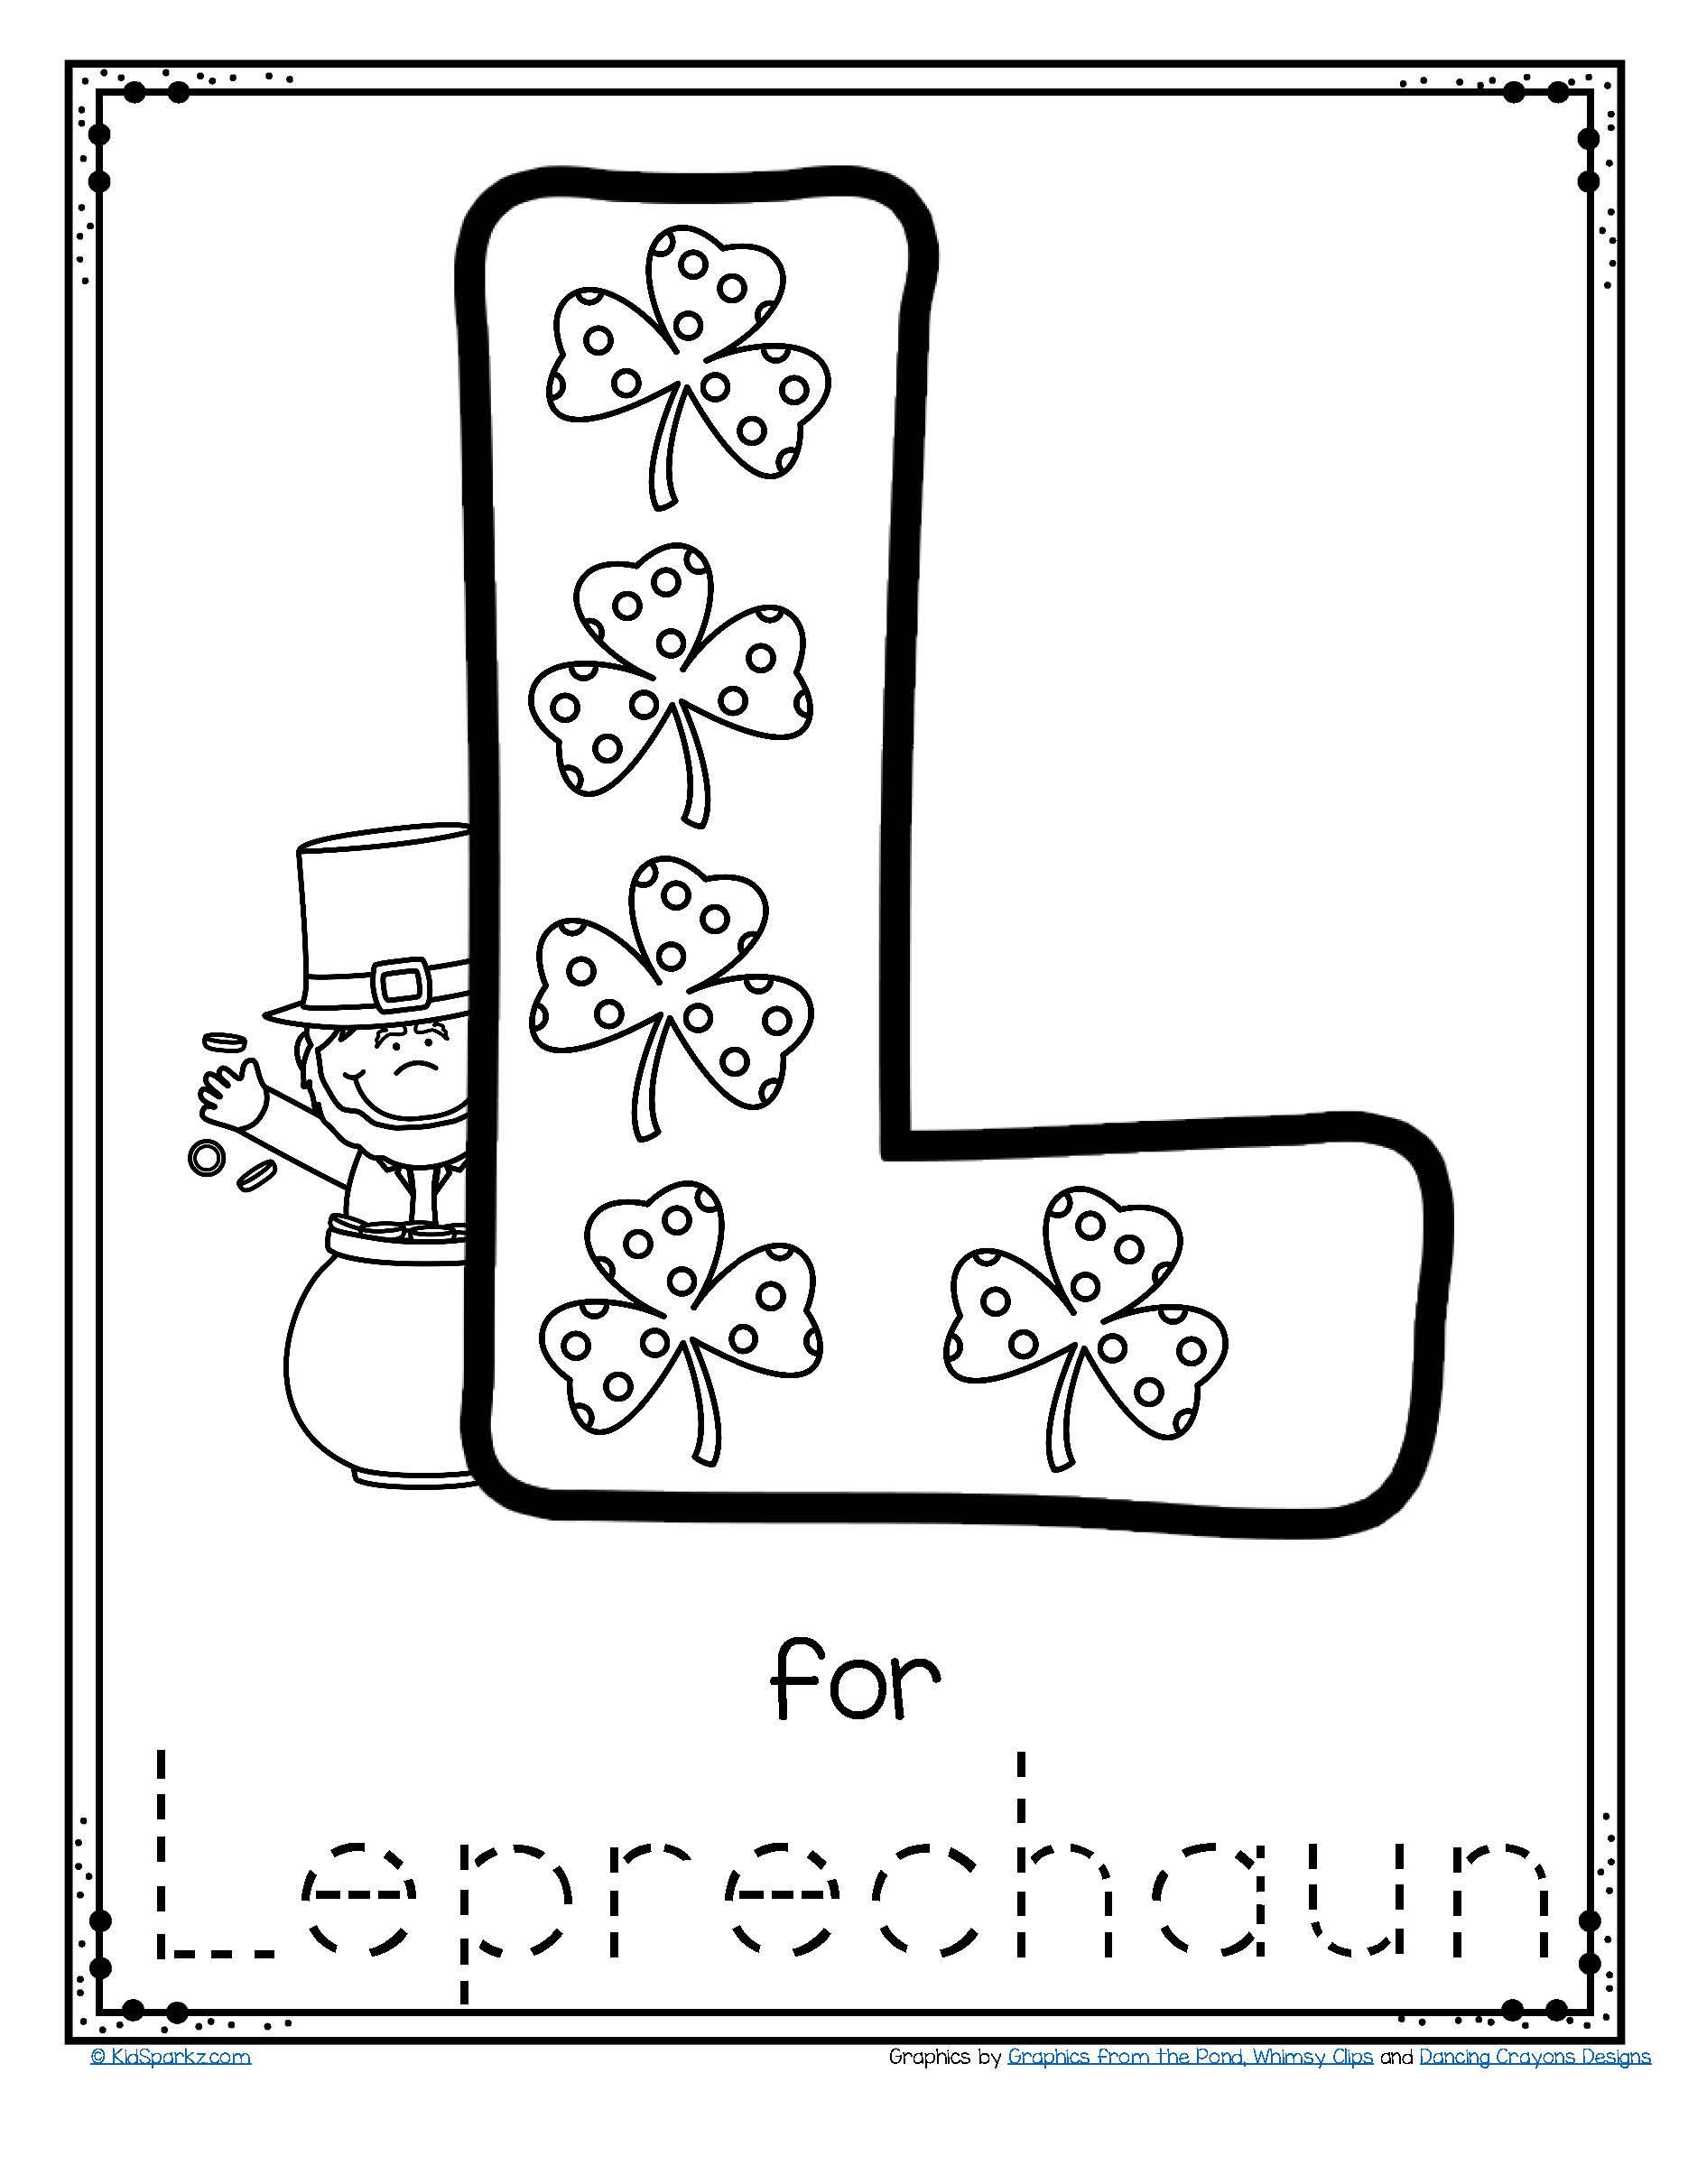 Letter L Worksheet Preschool Free L for Leprechaun Alphabet Trace and Color Printable to